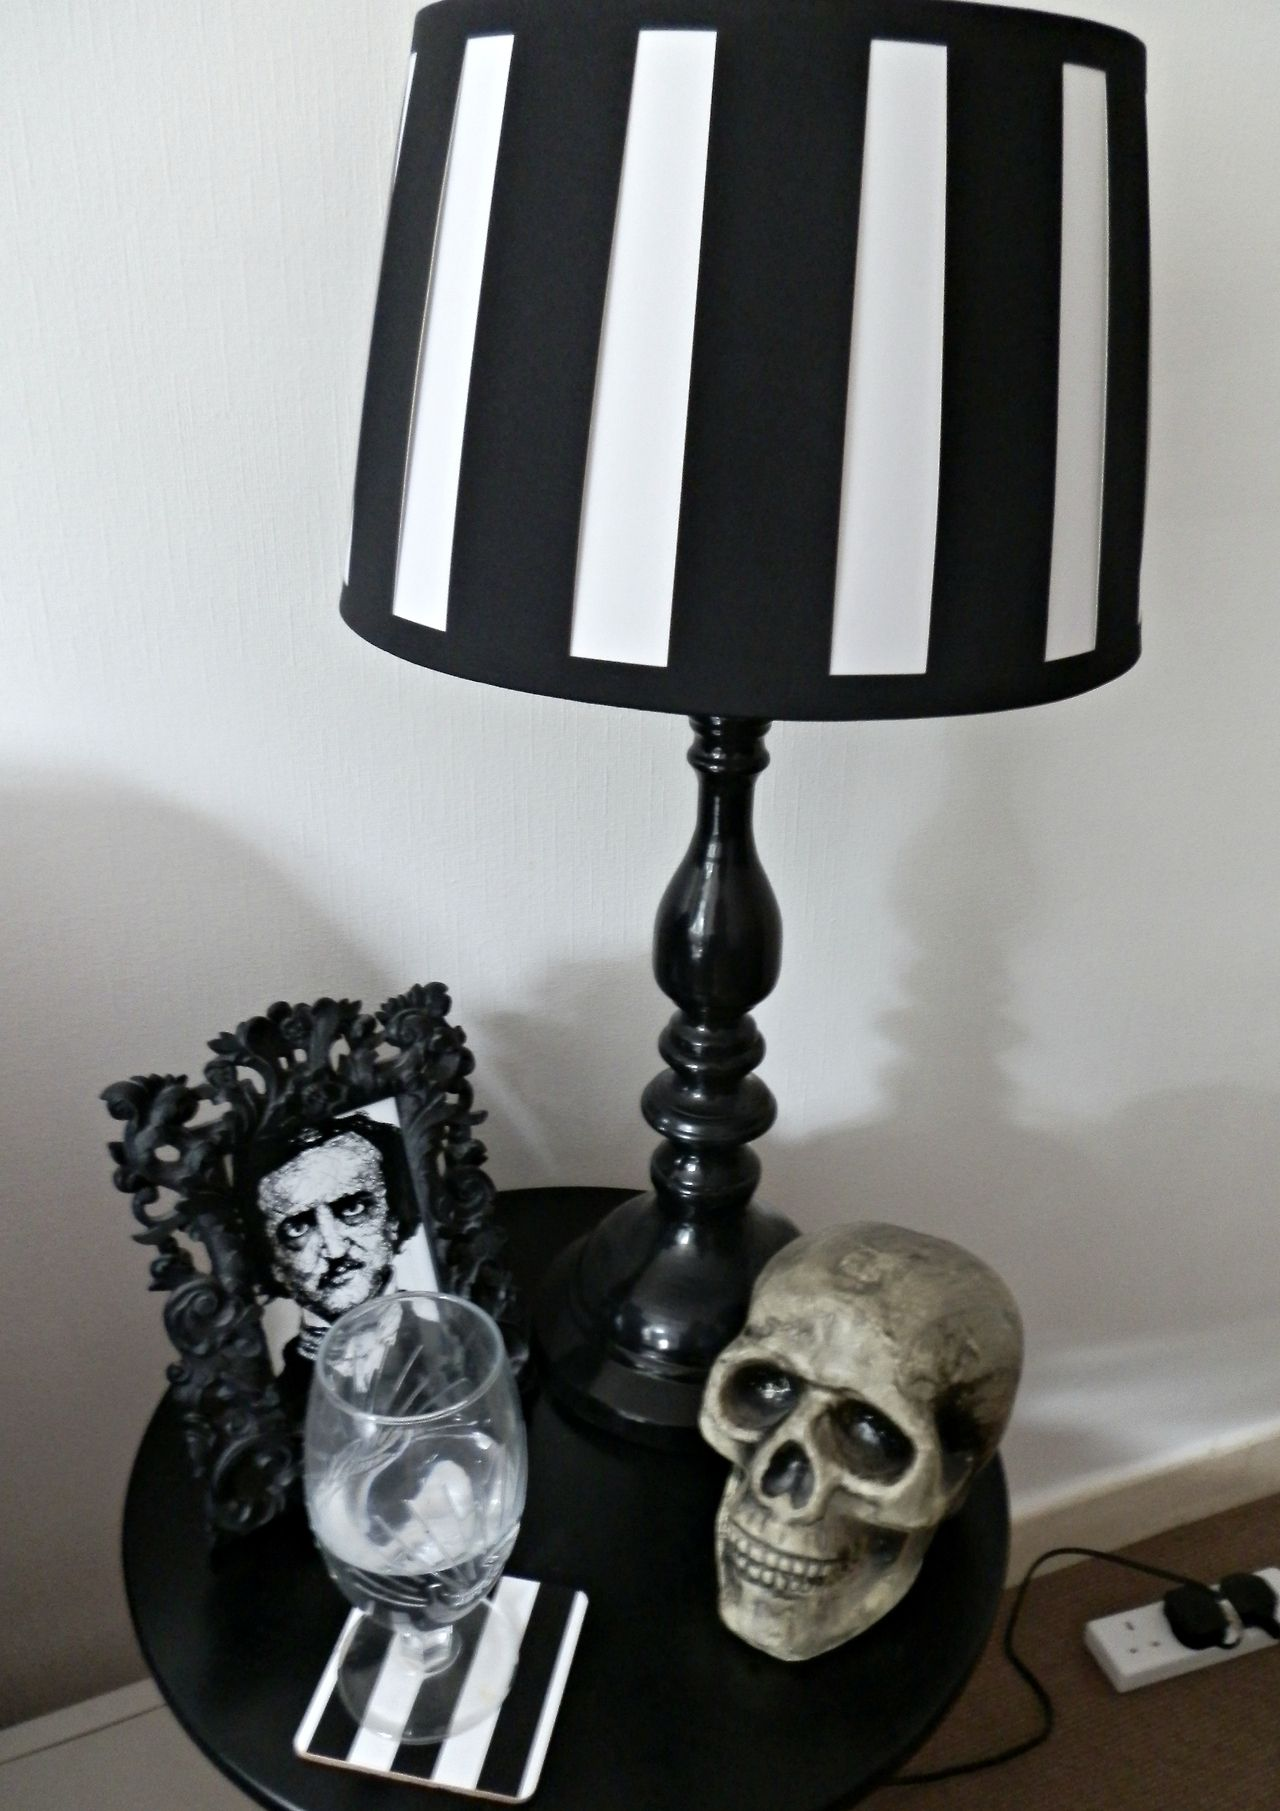 Skull Bedroom Decor 316a06565351cb995dde4a0e7e1b5bd7jpg